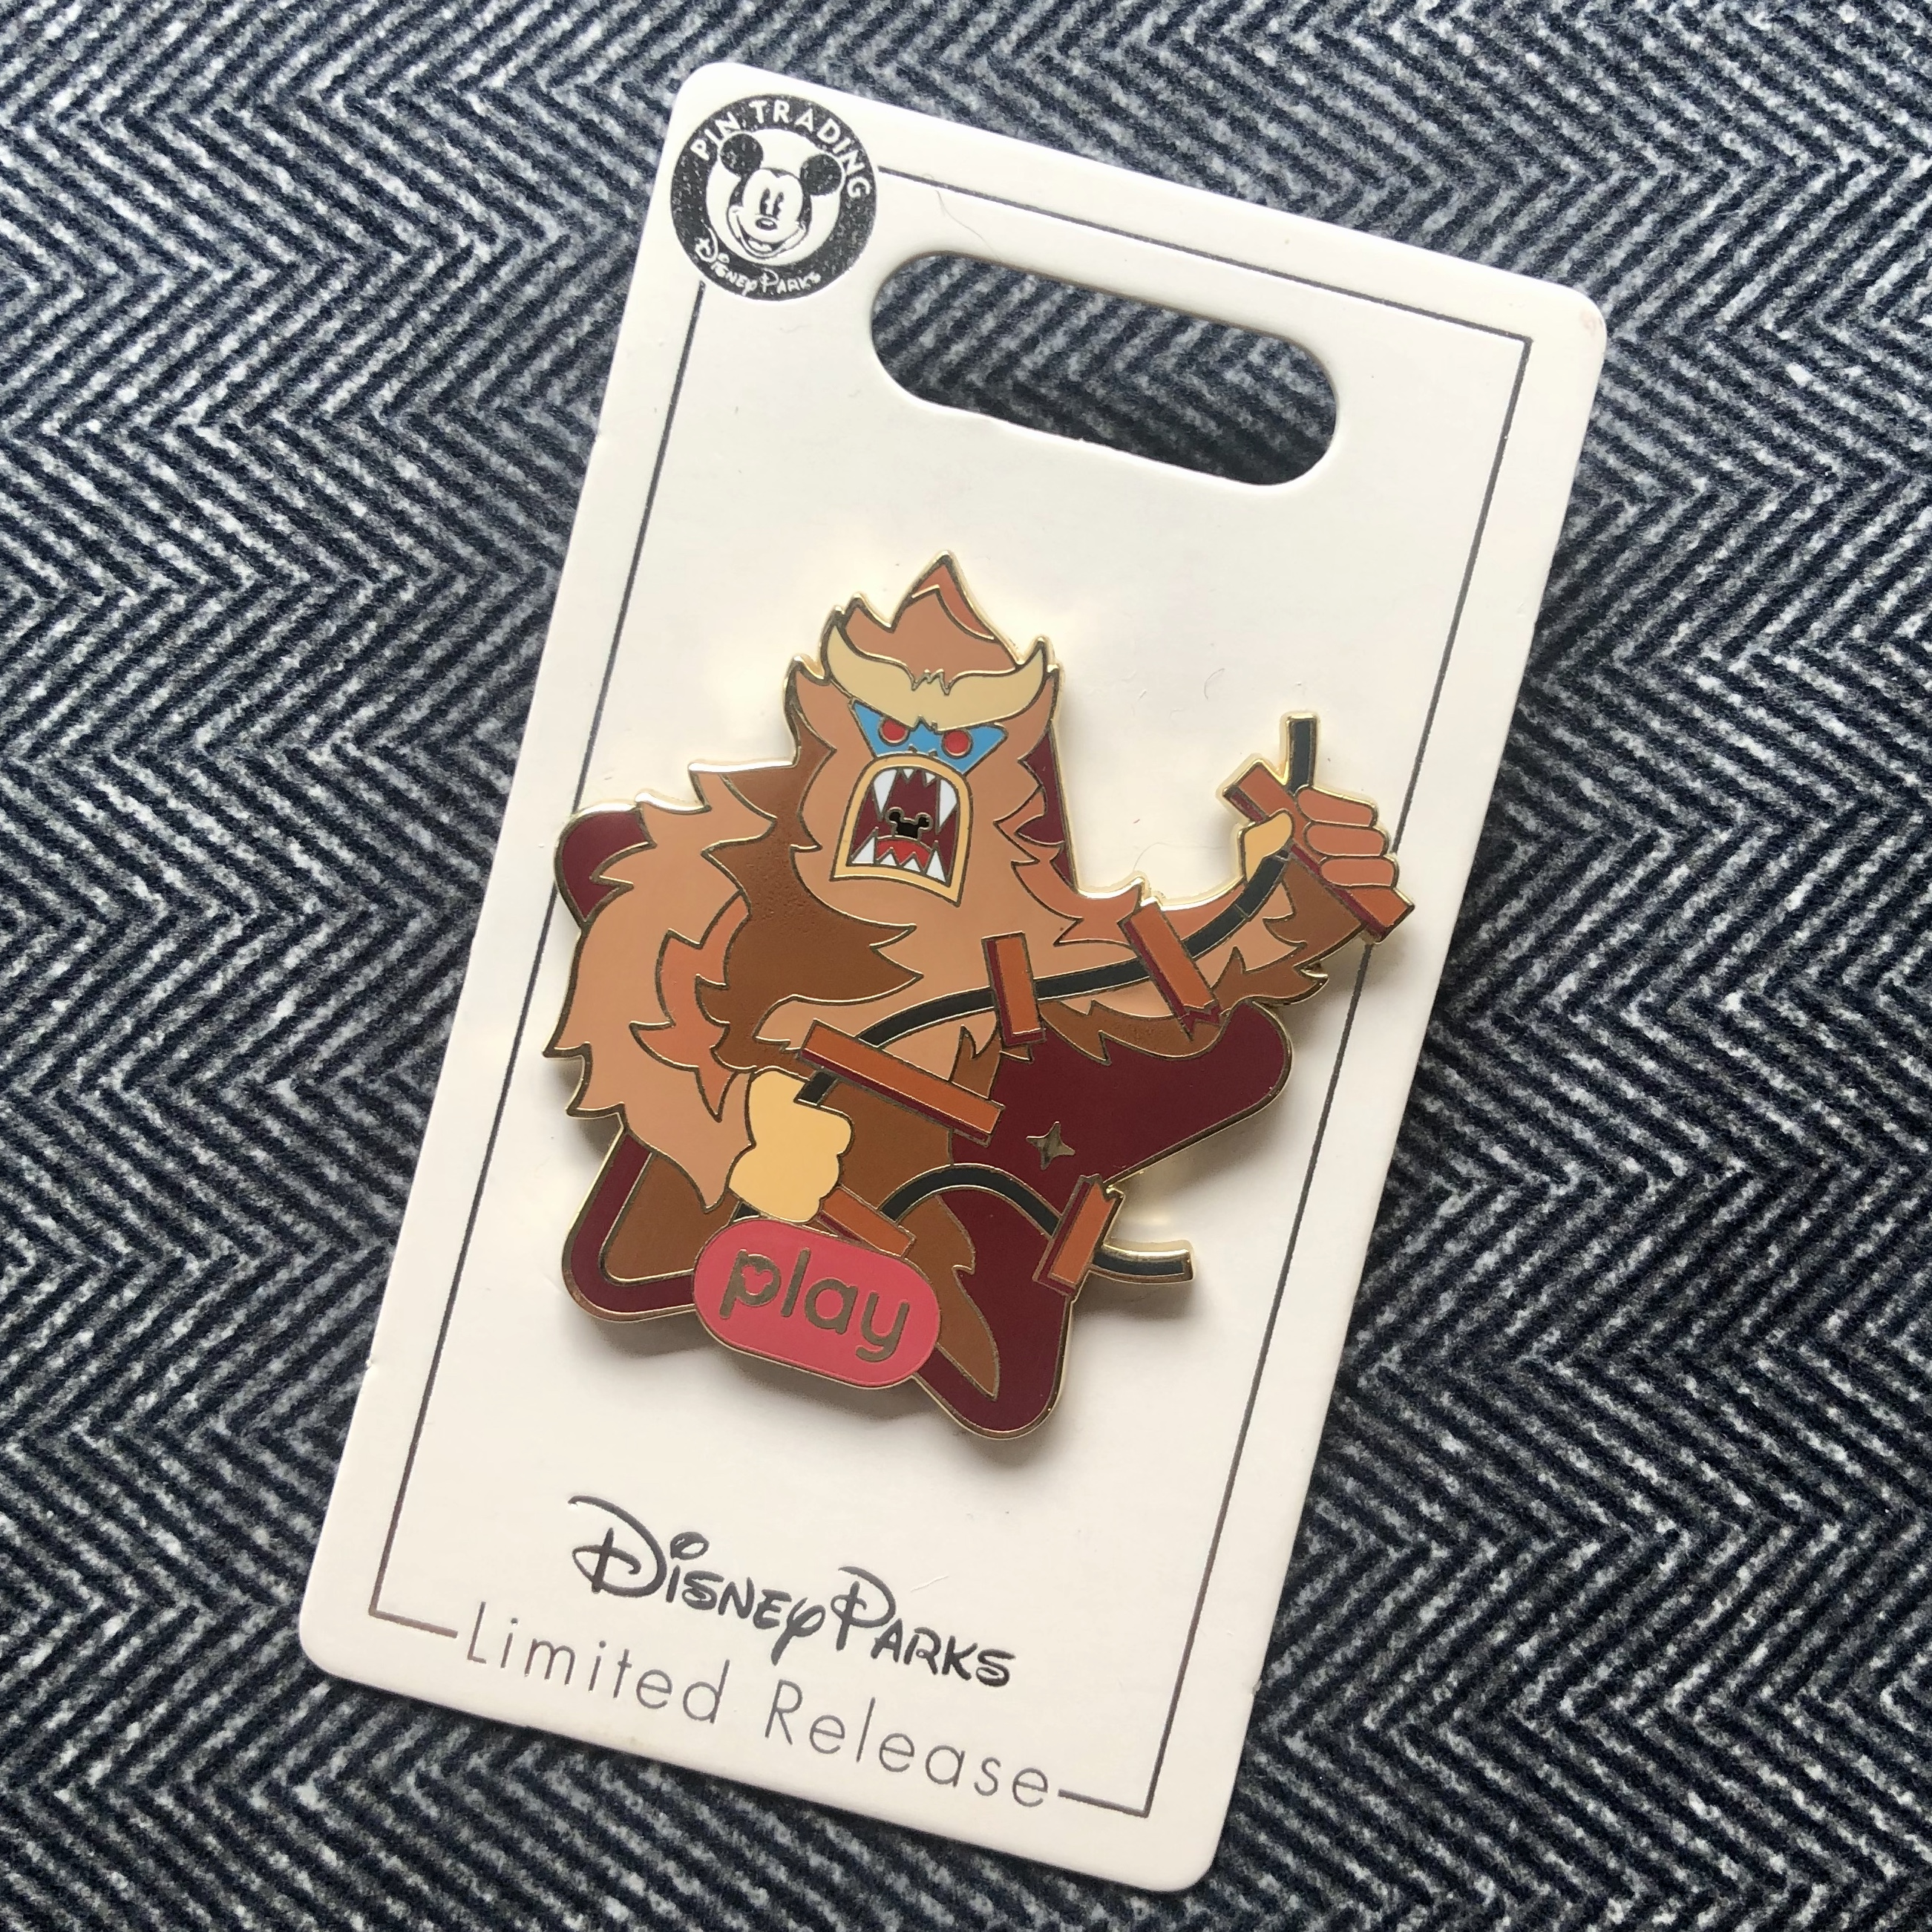 Yeti from Expedition Everest pin